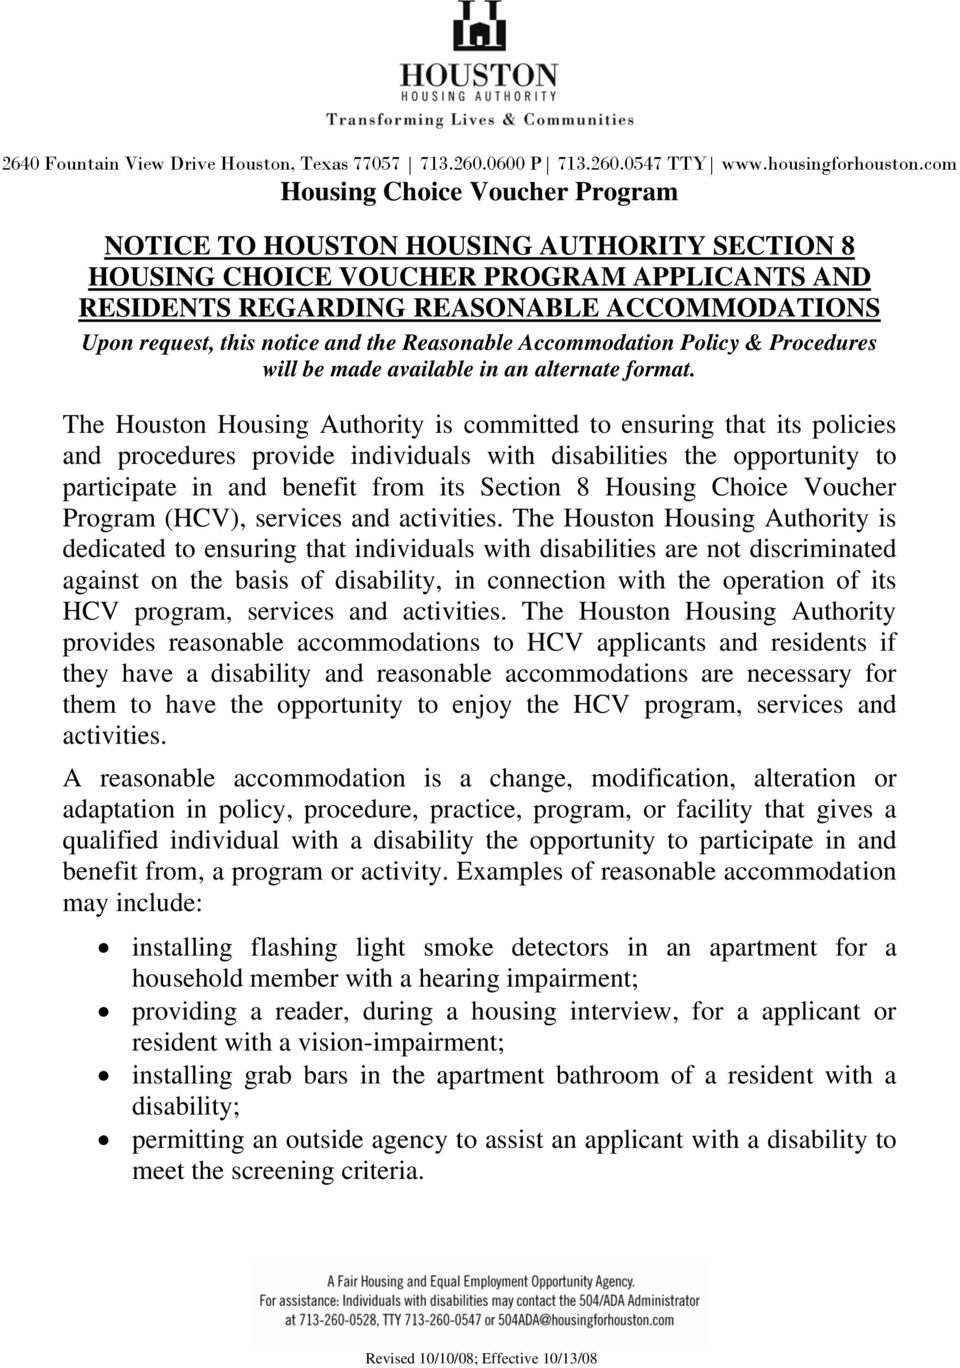 The Houston Housing Authority is committed to ensuring that its policies and procedures provide individuals with disabilities the opportunity to participate in and benefit from its Section 8 Housing